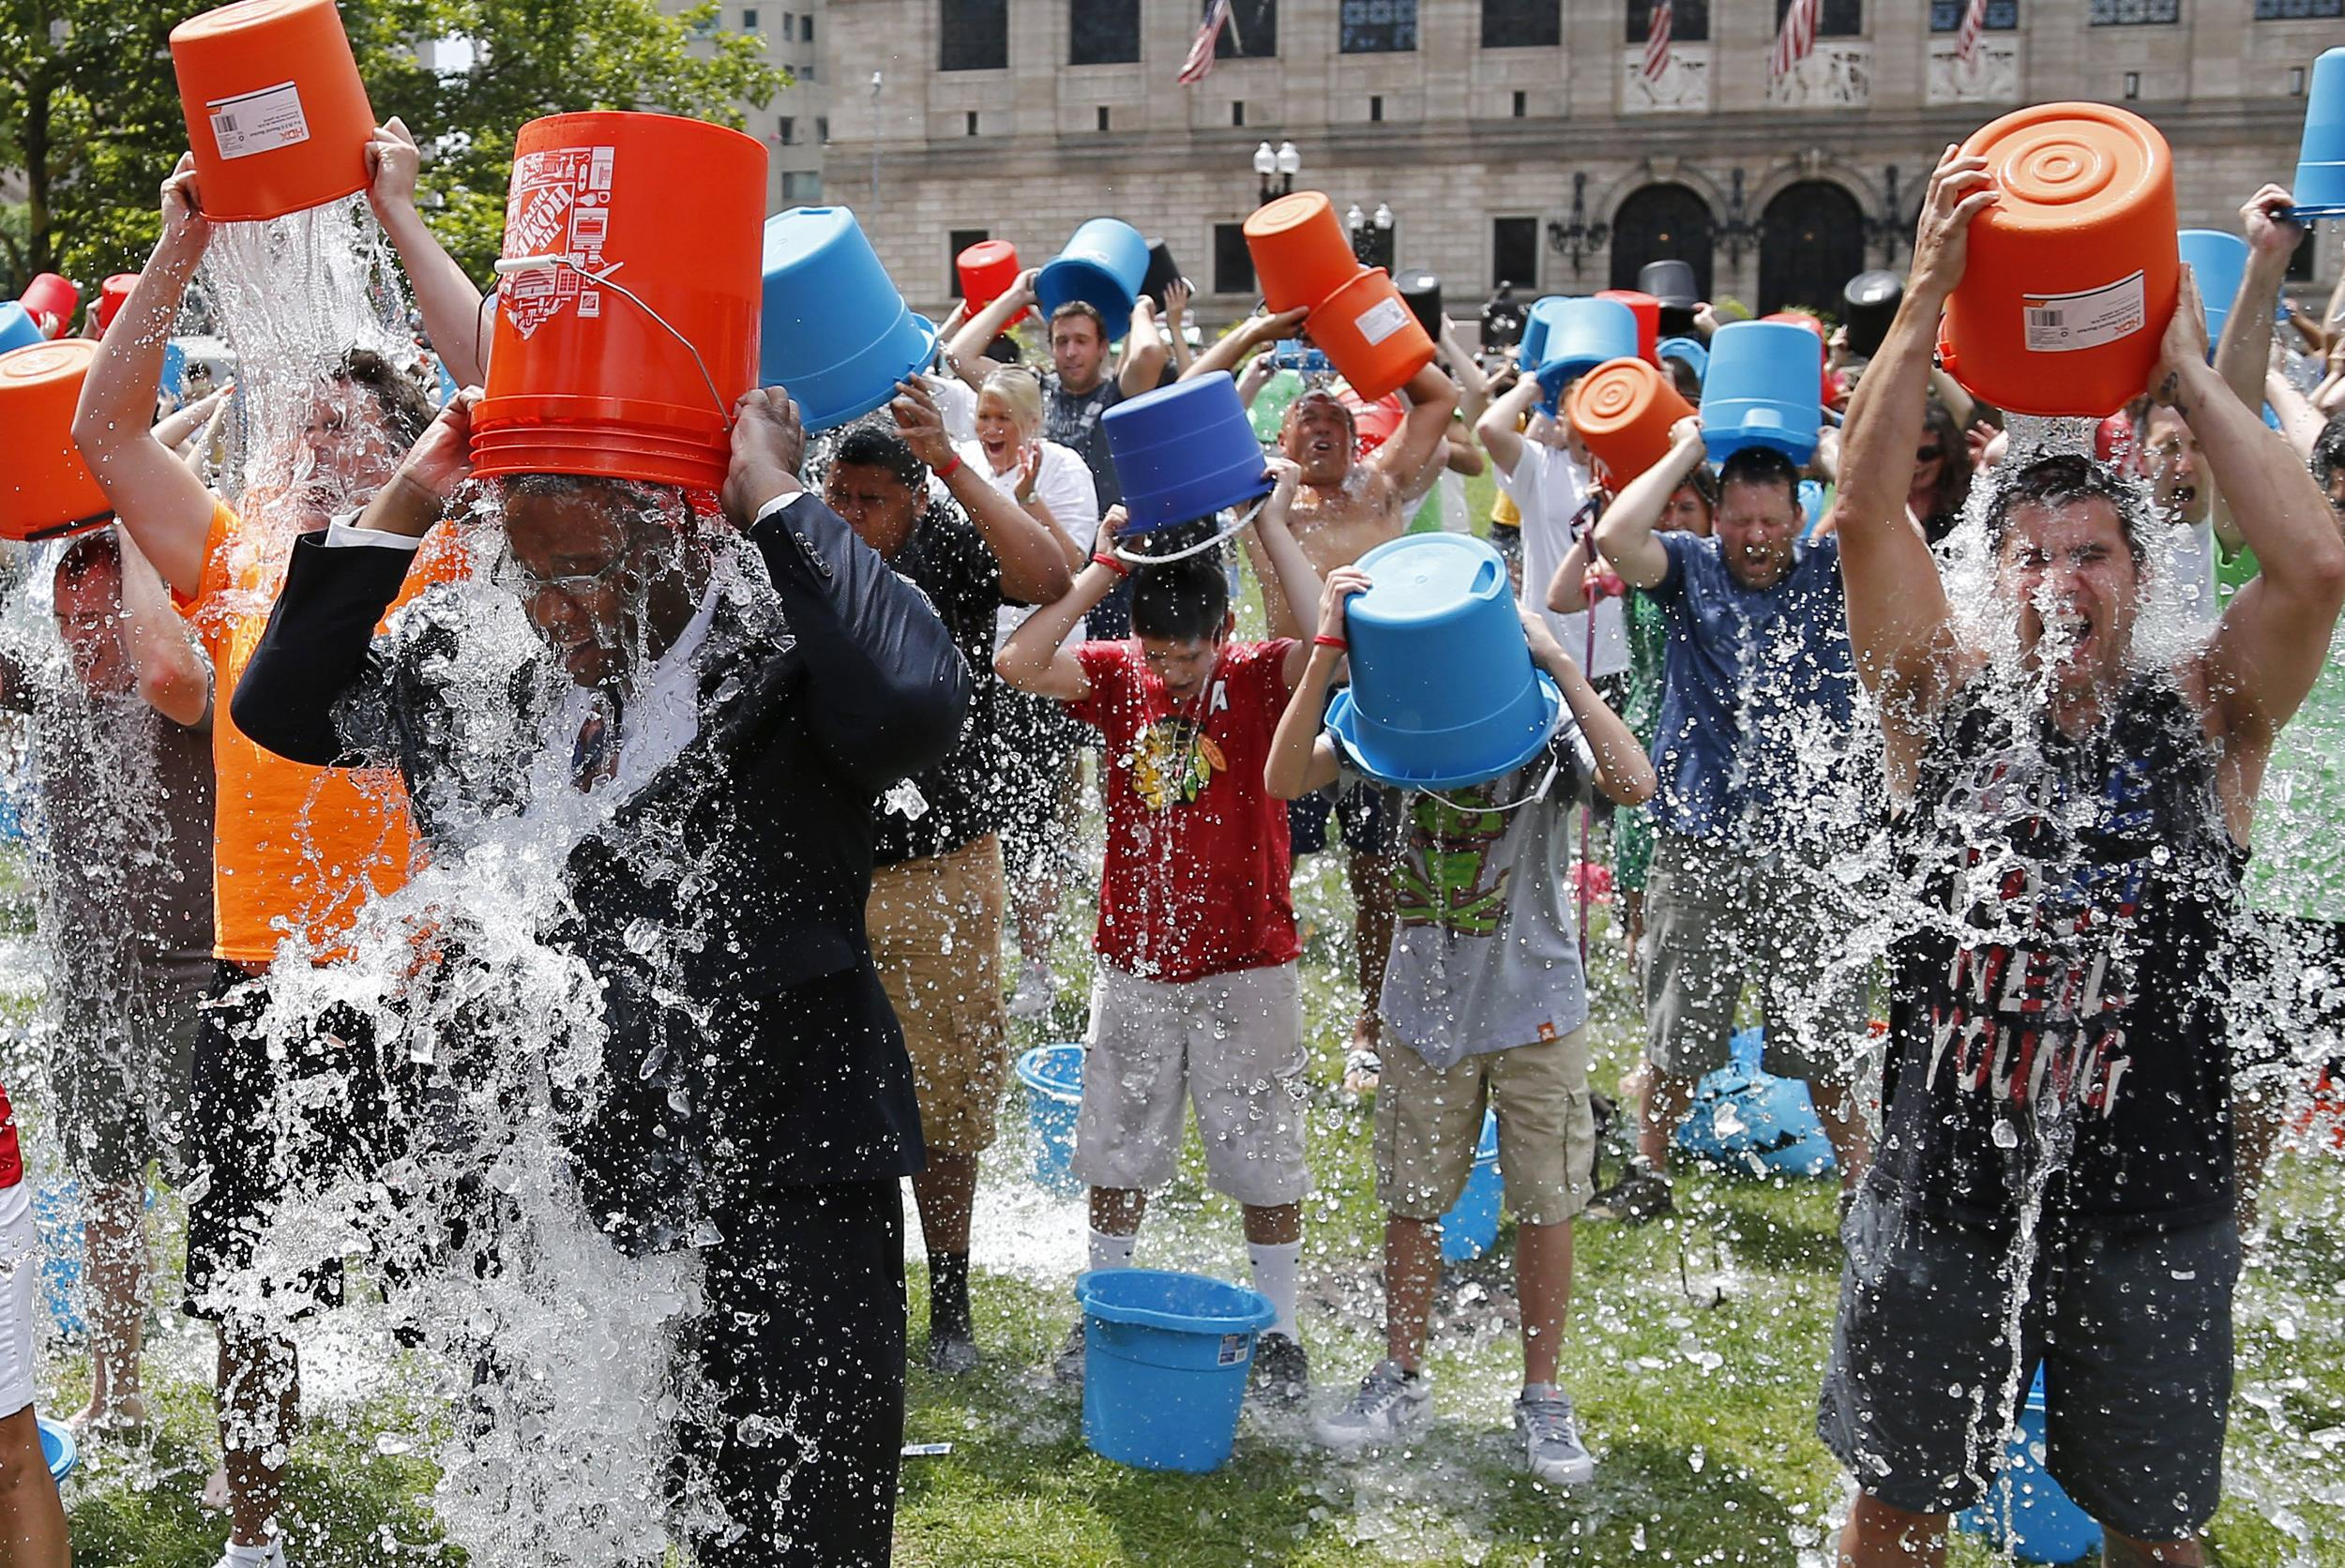 A group of people takes the ALS Ice Bucket Challenge in Boston, MA.